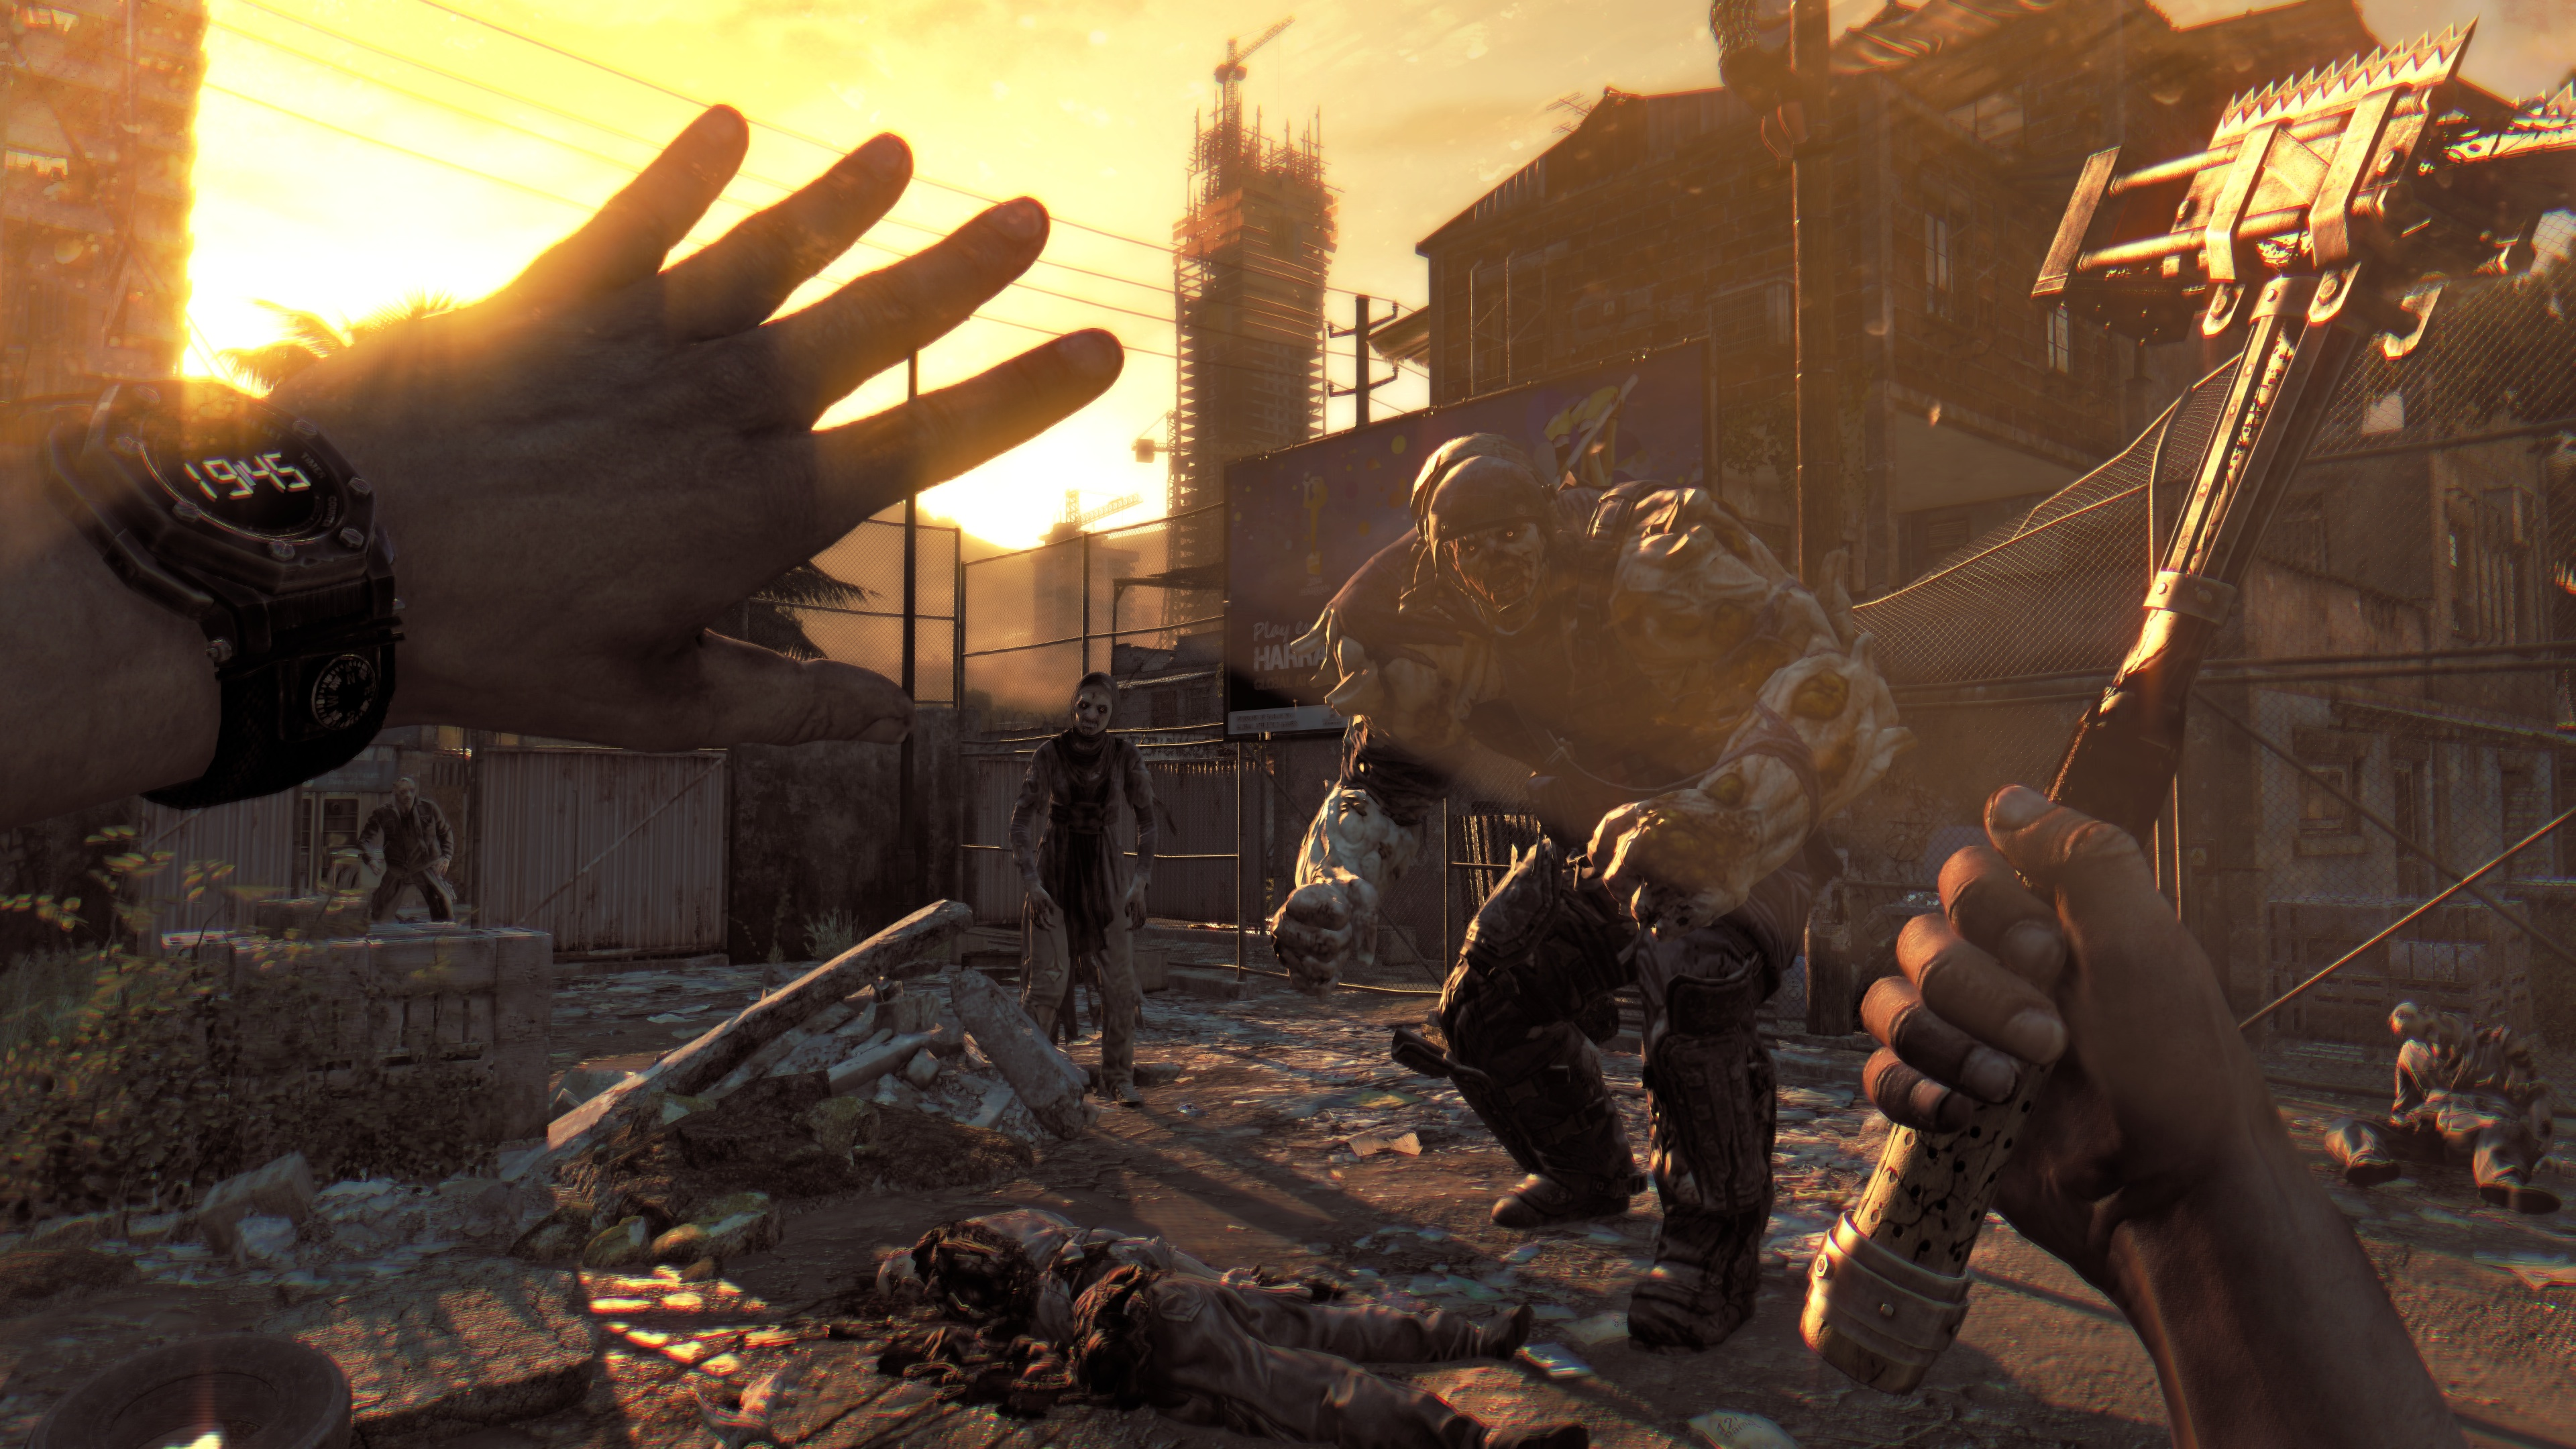 Dying Light was a surprise breakout hit for WB.